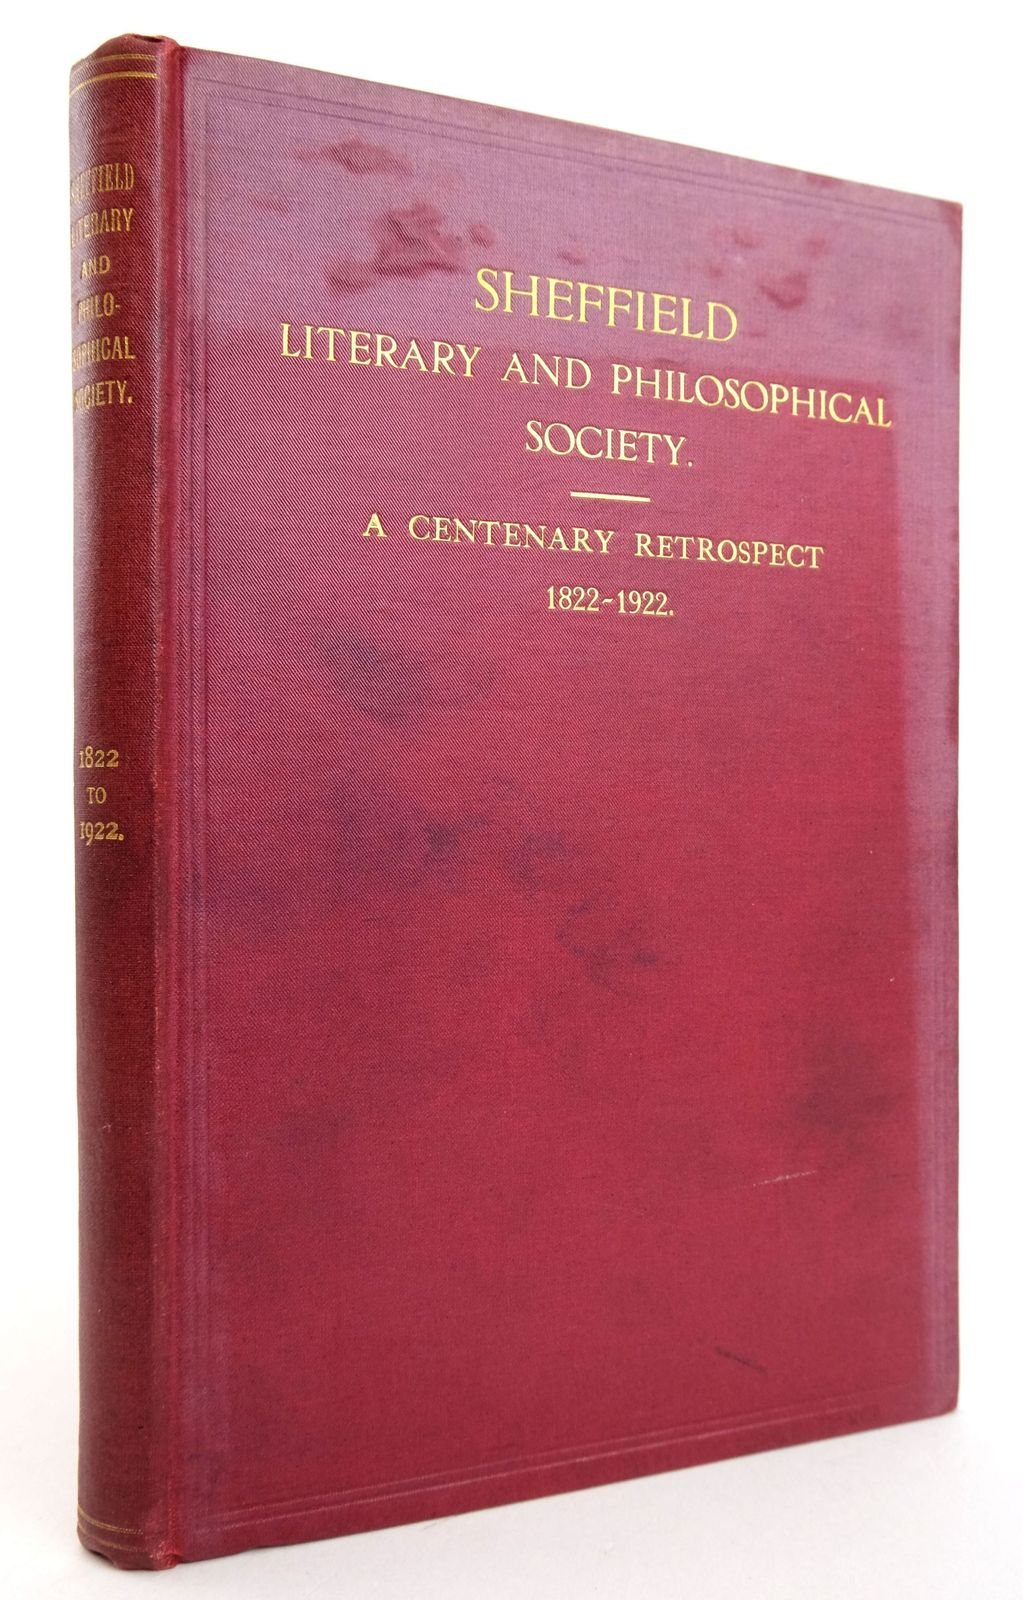 Photo of SHEFFIELD LITERARY AND PHILOSOPHICAL SOCIETY: A CENTENARY RETROSPECT 1822-1922- Stock Number: 1819470